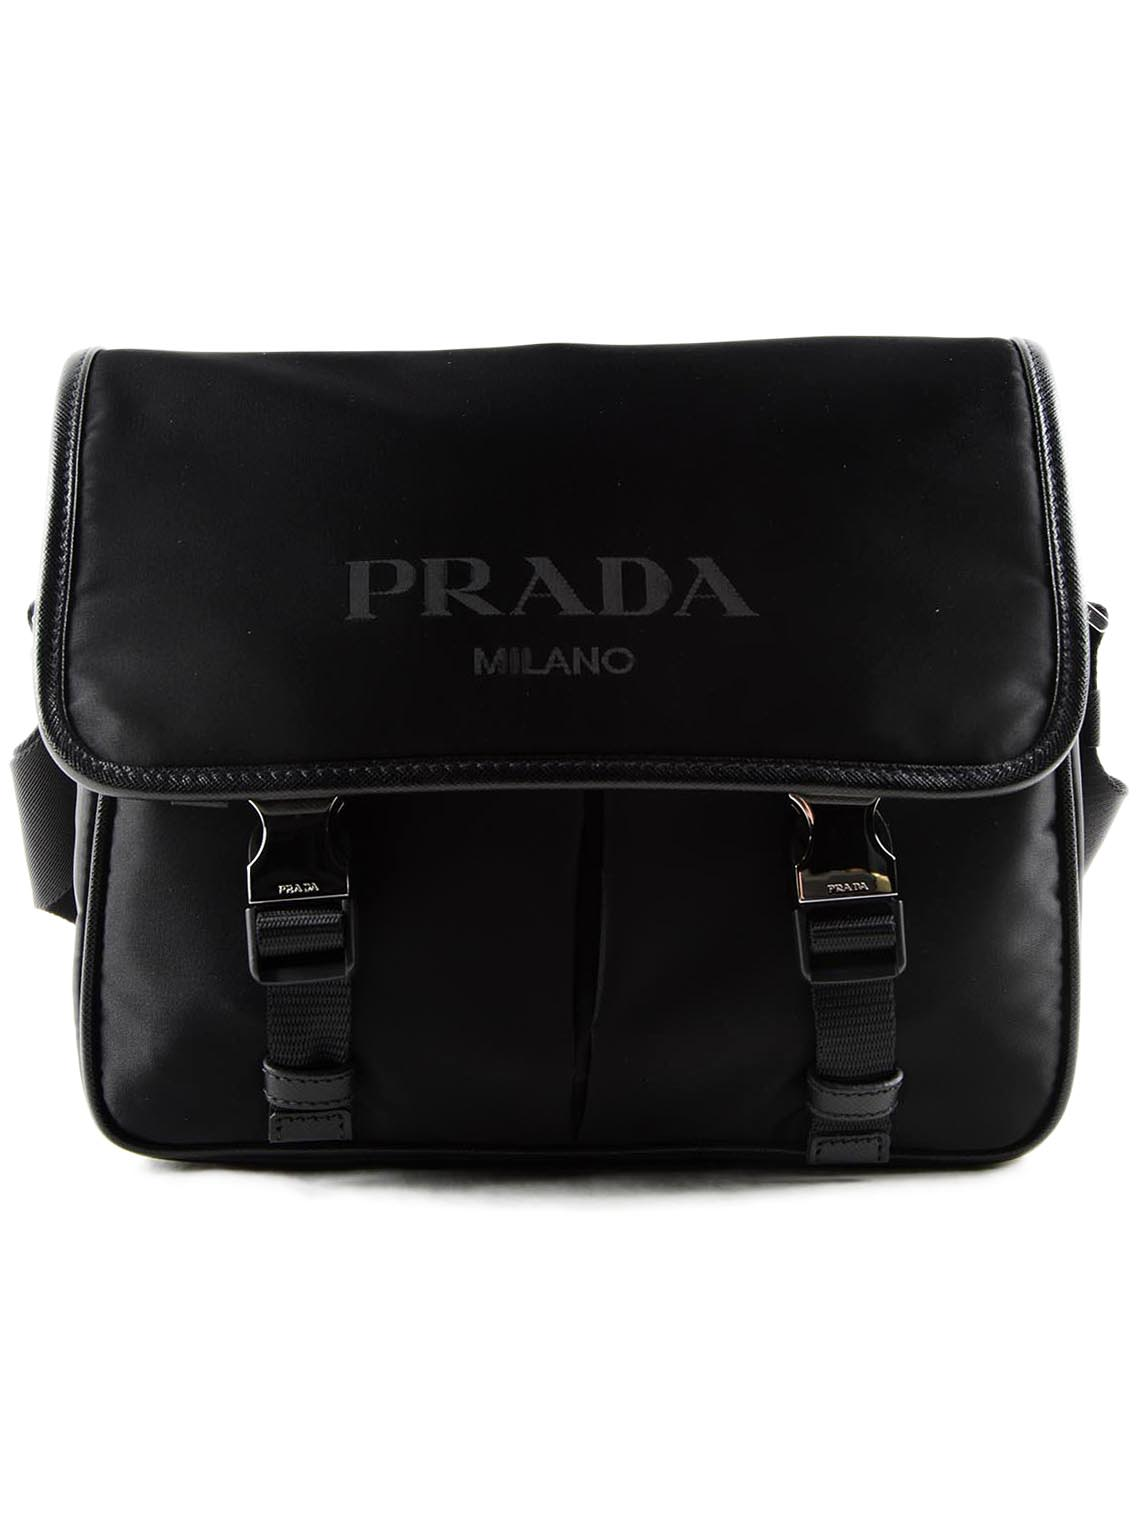 db818c79632c93 italist | Best price in the market for Prada Prada Cross-body Messenger  Shoulder Bag